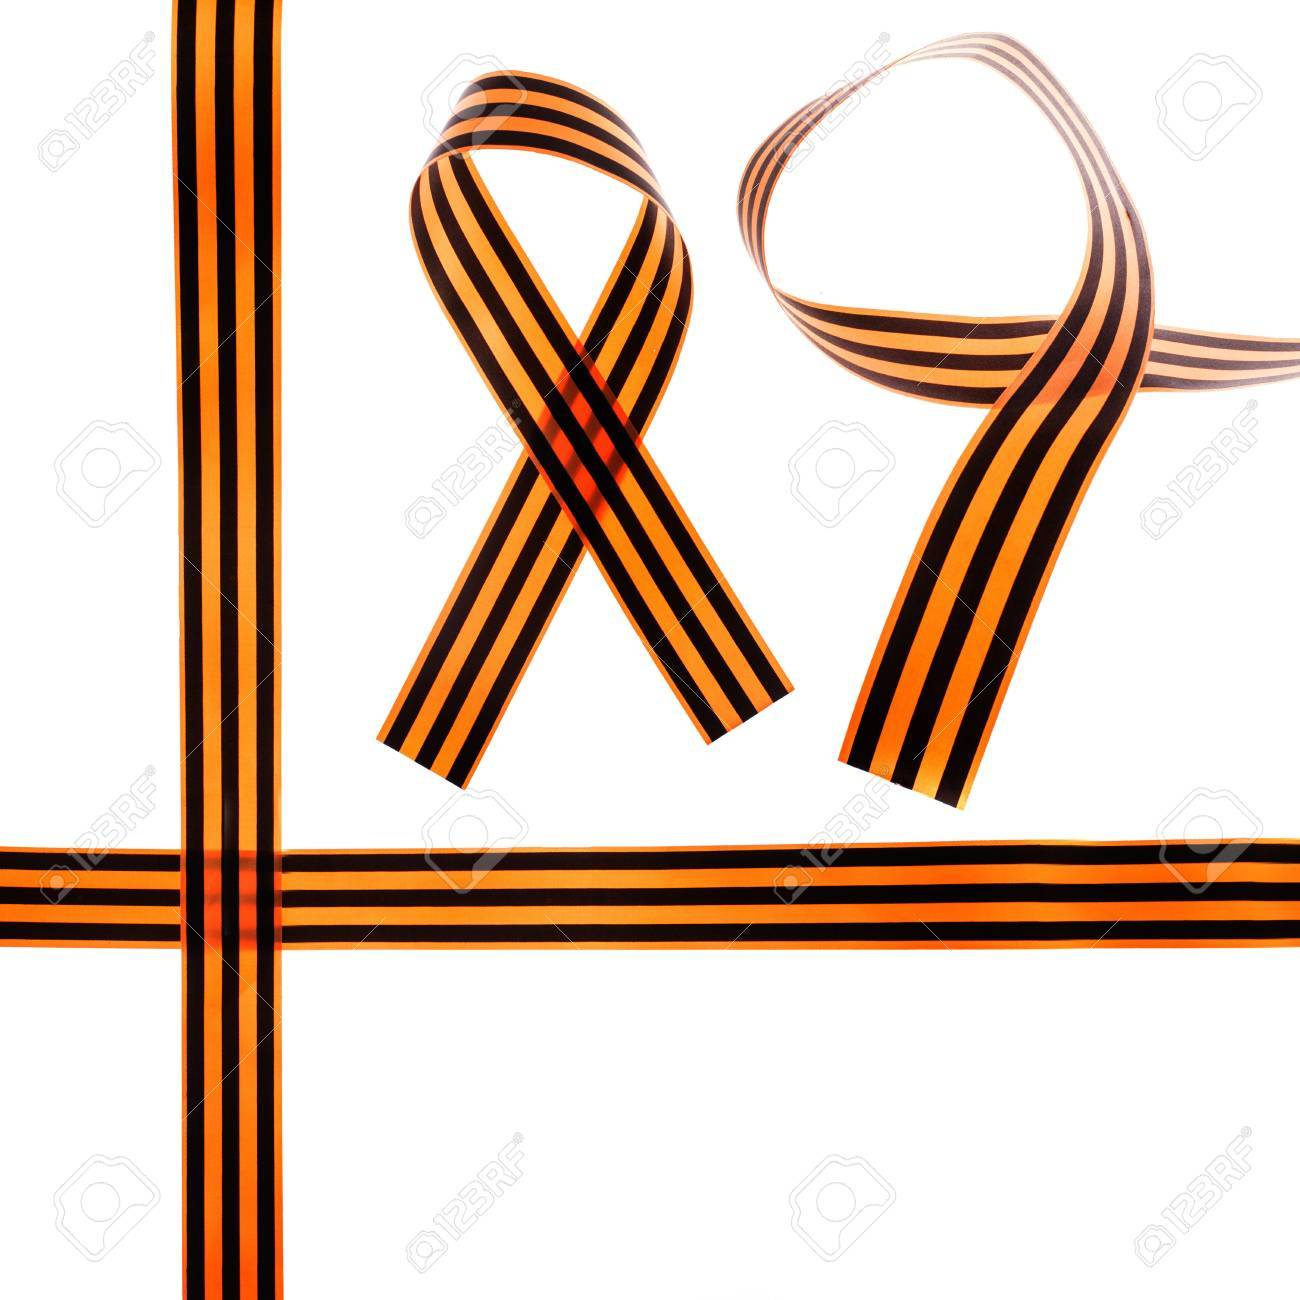 St. George Ribbon - symbol of russian military prowess Stock Photo - 19614455